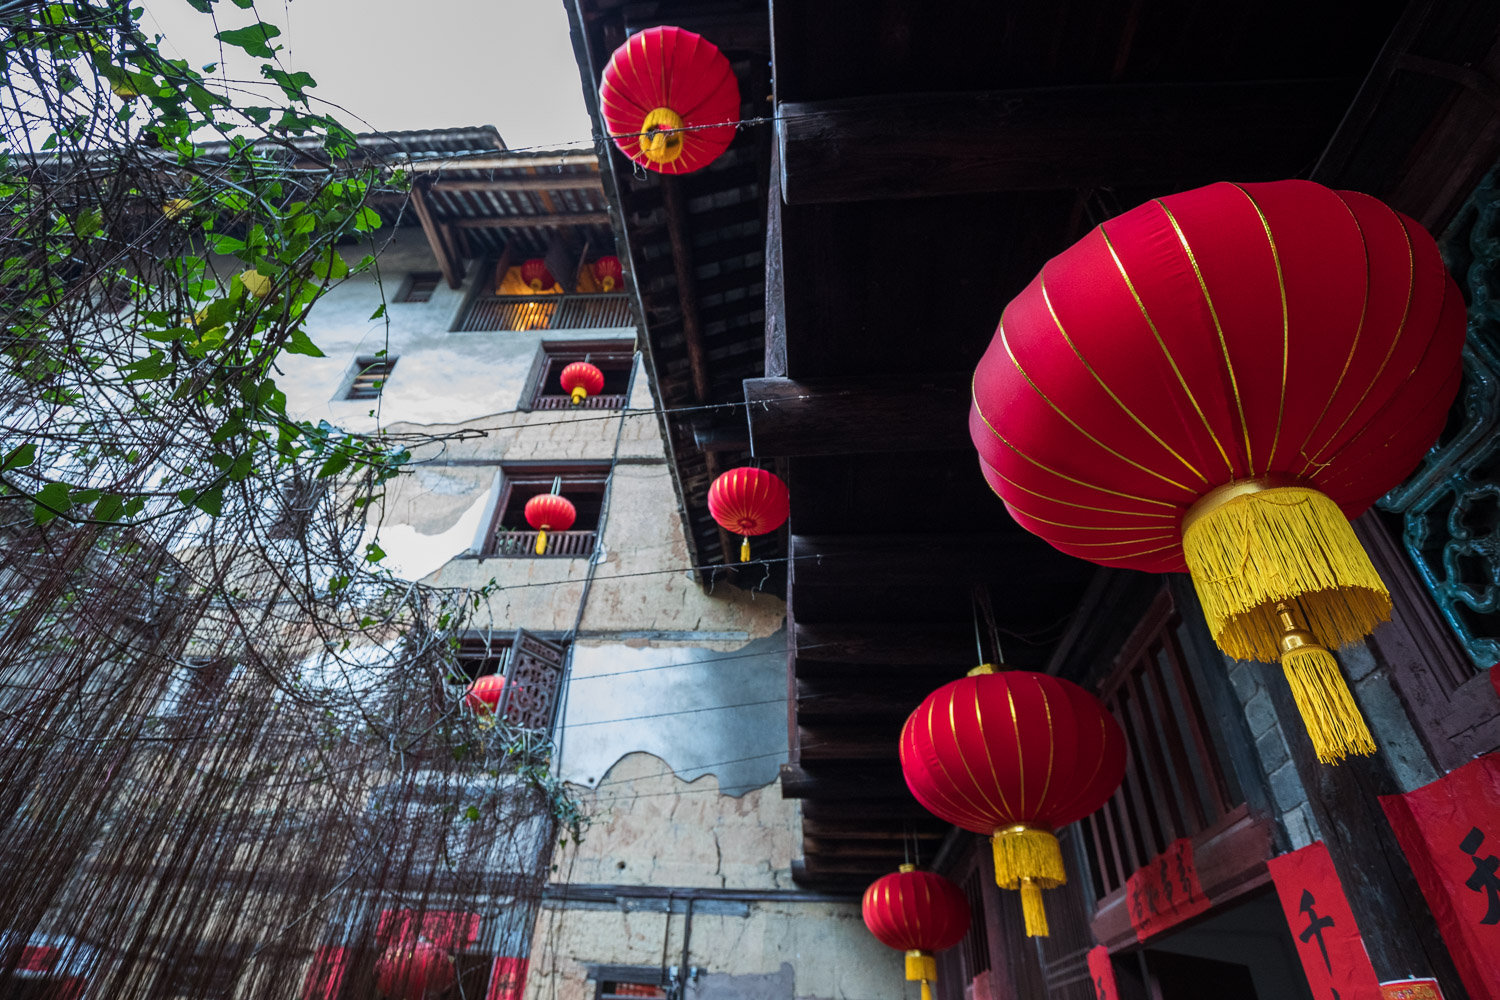 Picture of red lanterns in a Chinese guesthouse.